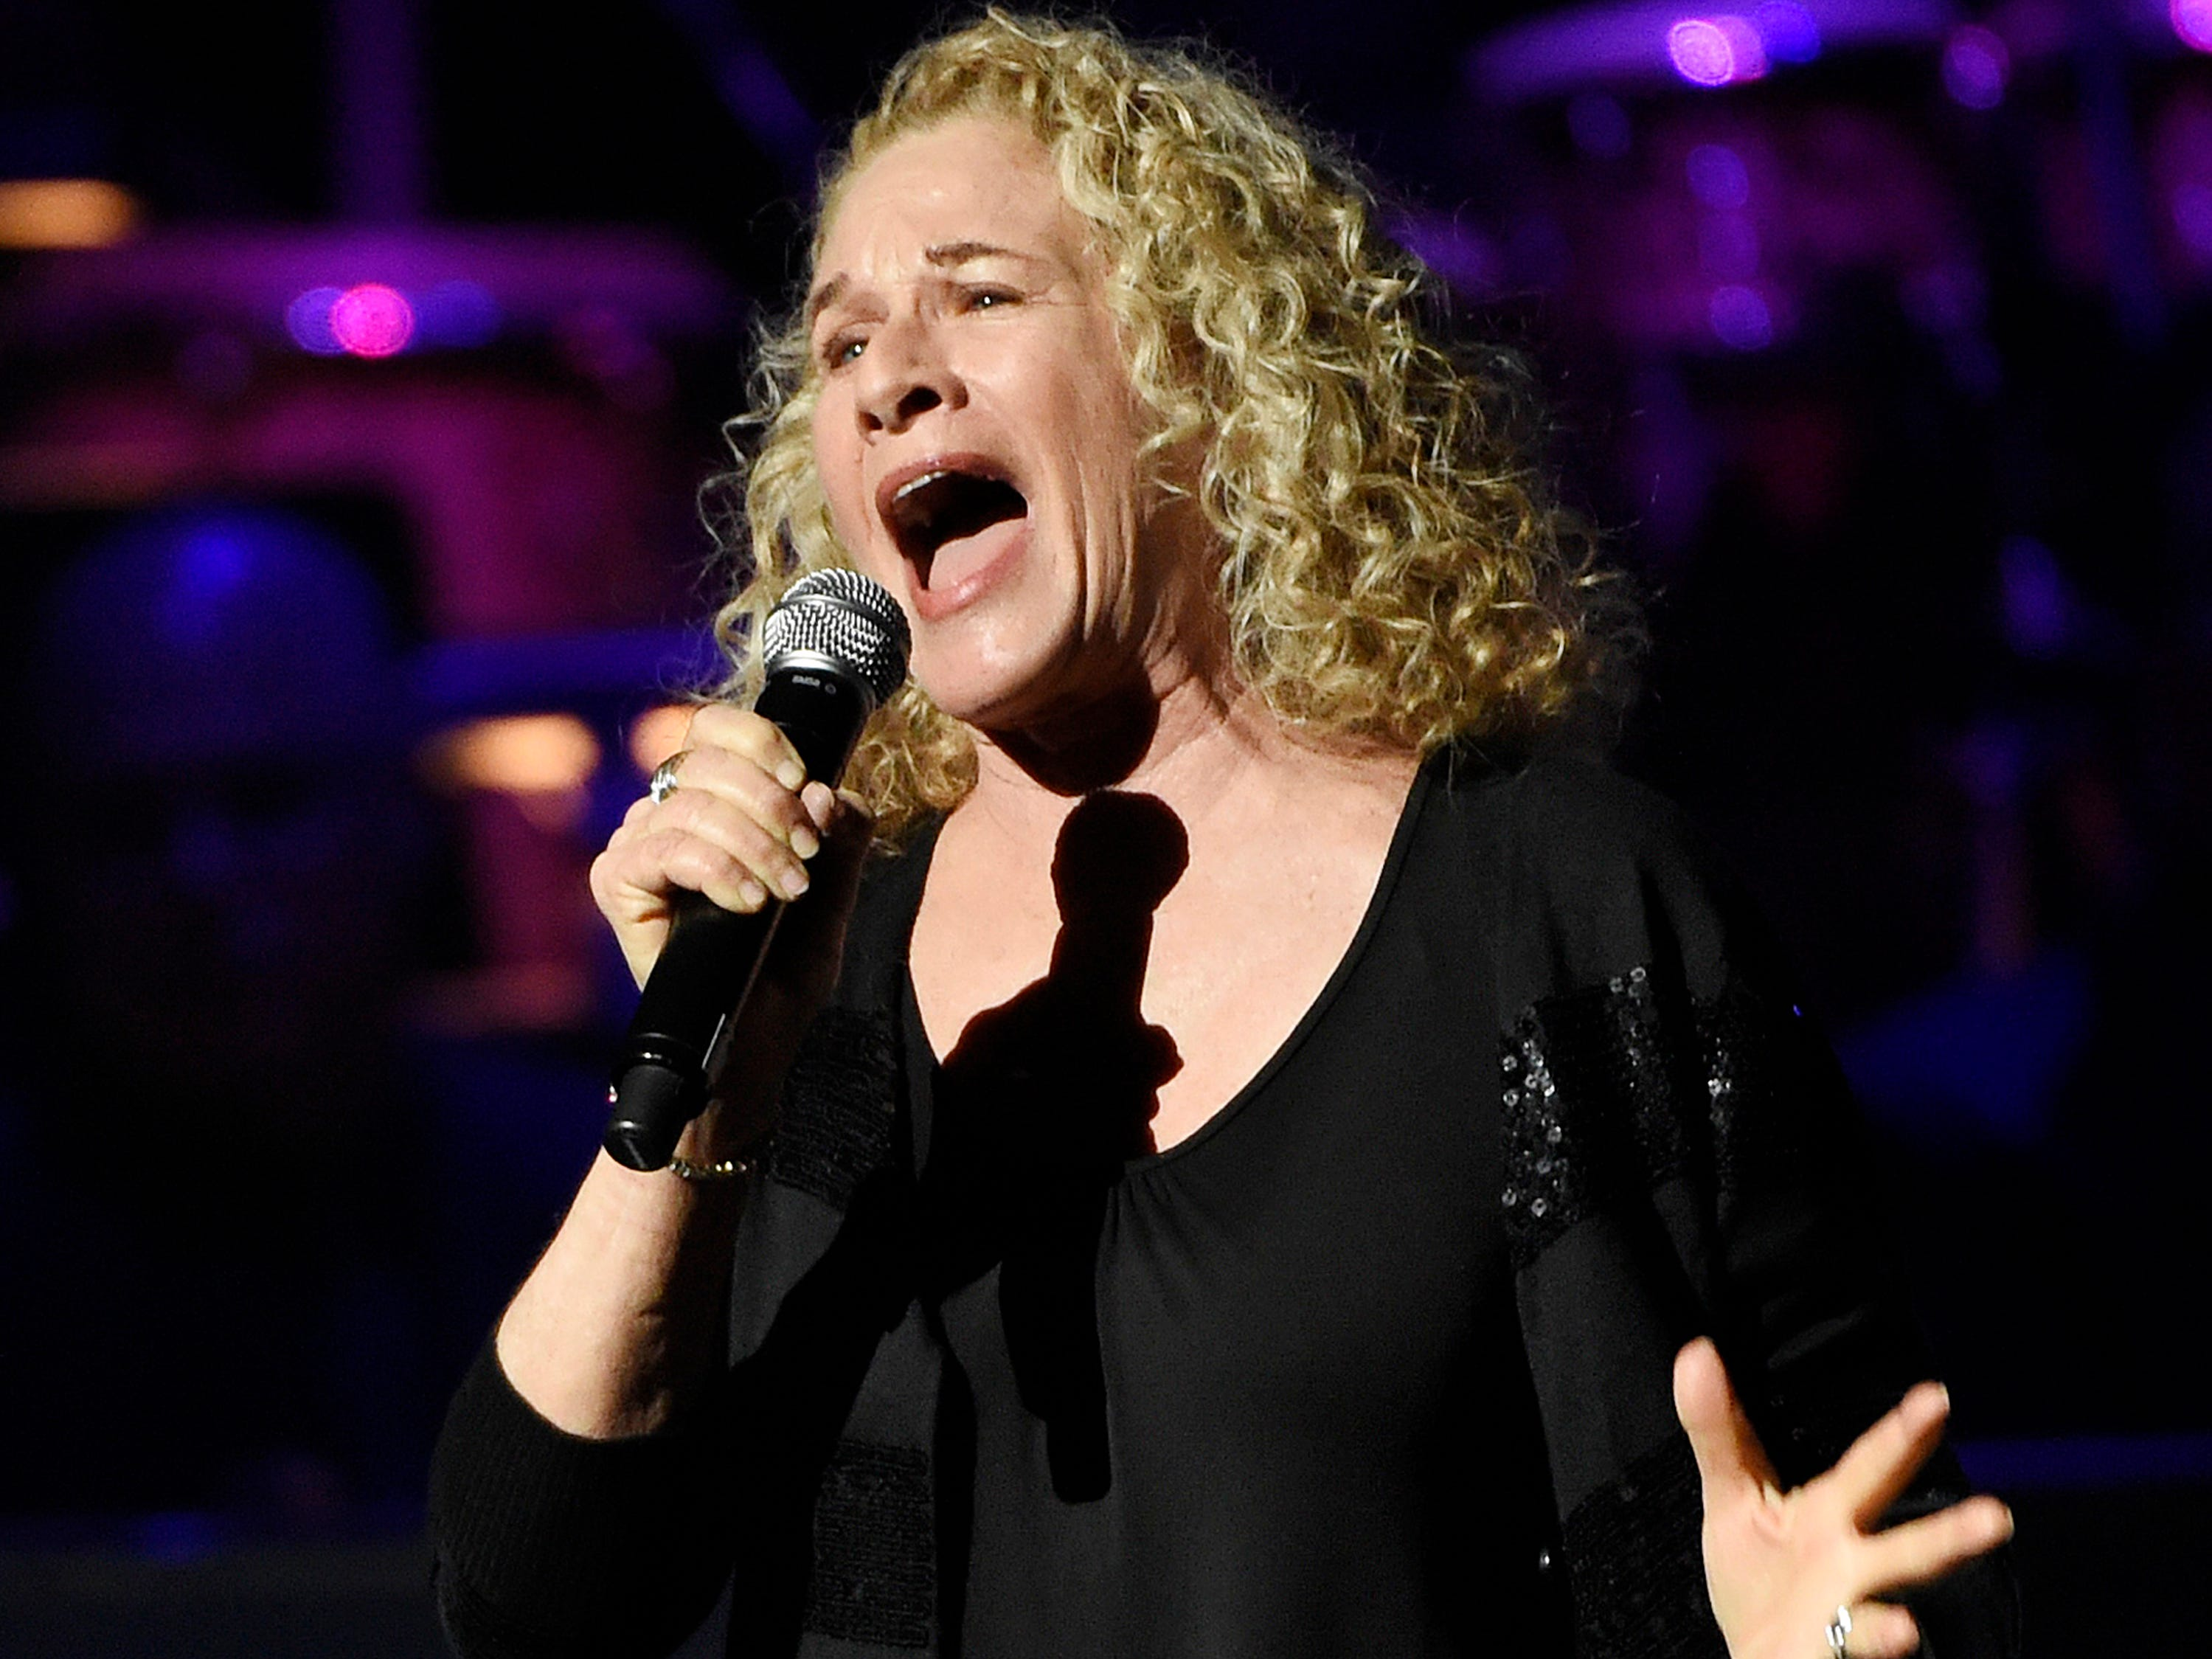 Legendary singer-songwriter Carole King's last Milwaukee area show was 32 years ago, when she played Alpine Valley Music Theatre on Aug. 6, 1977.